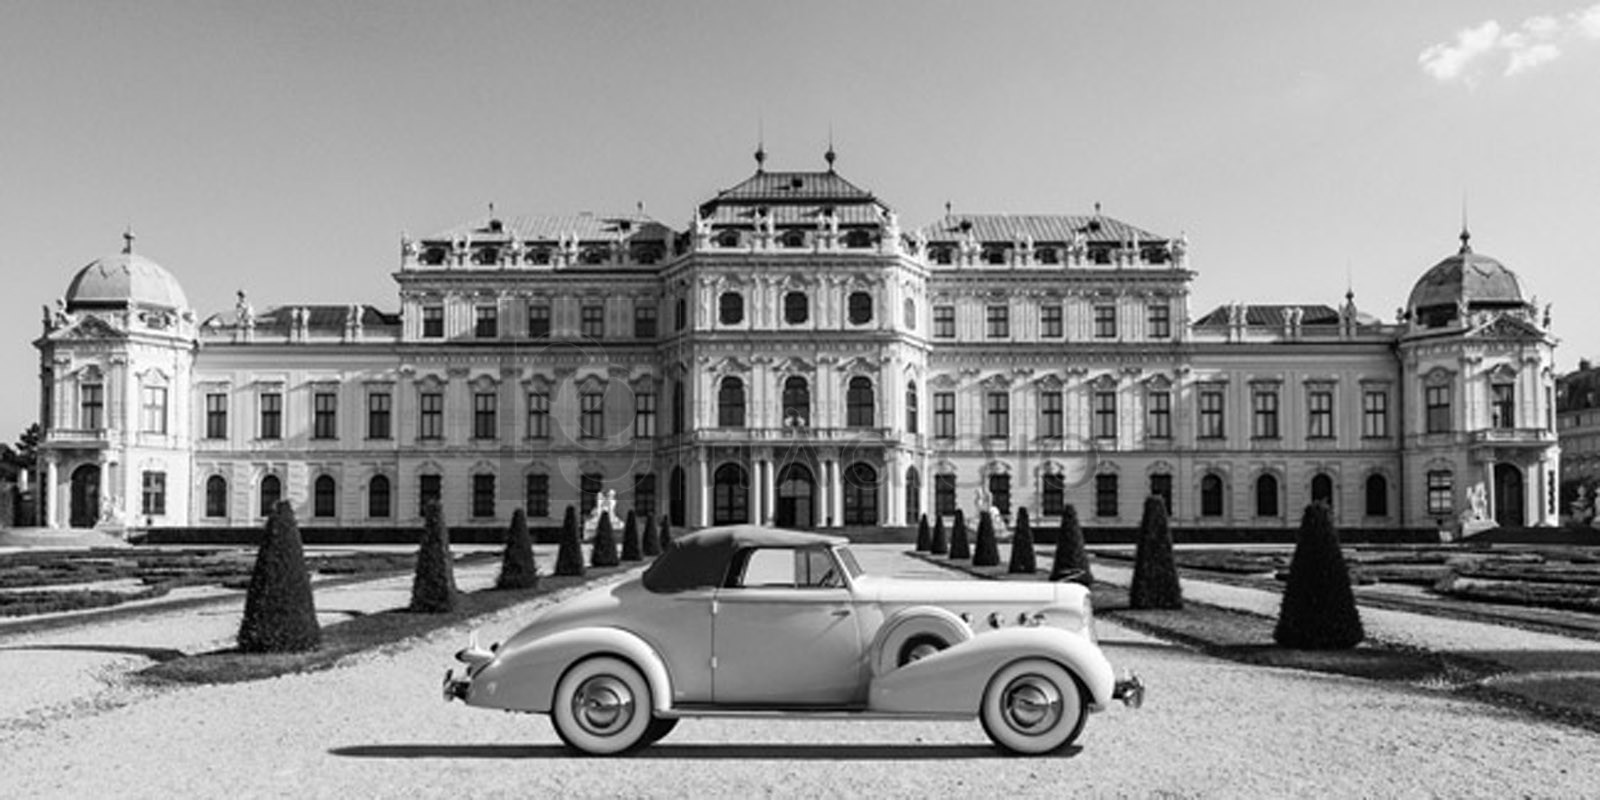 Gasoline Images - At Belvedere Palace, Vienna